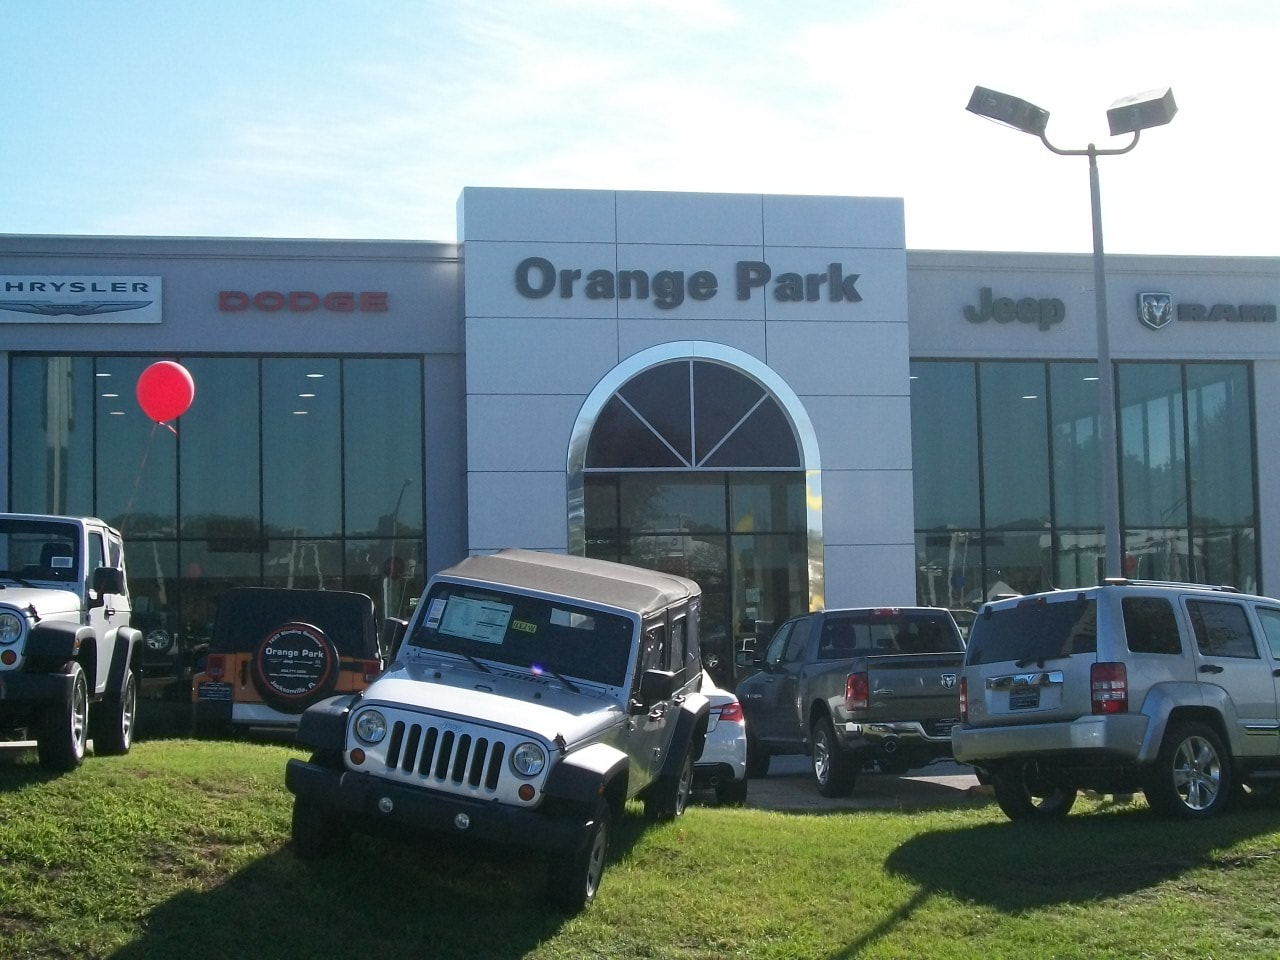 Jacksonville New Car Dealer Orange Park Chrysler Dodge Jeep RAM - Jeep chrysler dealerships